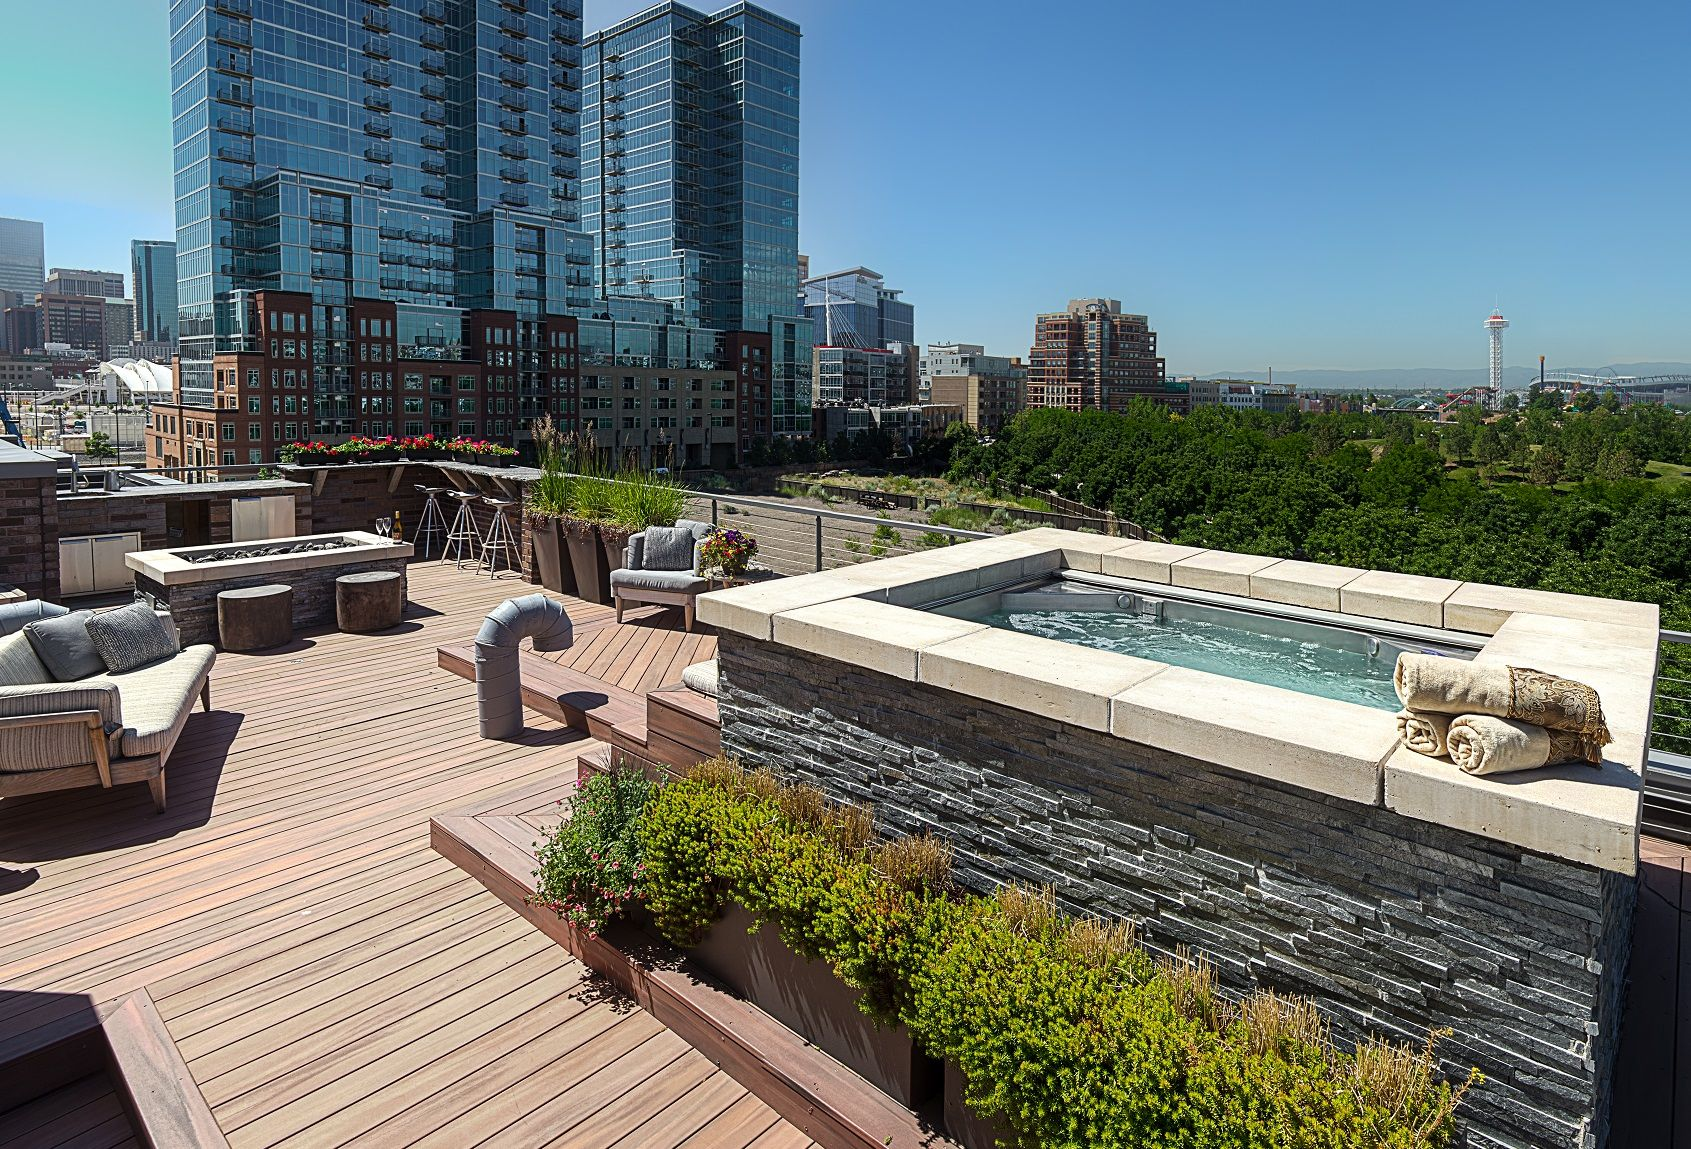 Stainless steel rooftop hot tub with built in bench for Rooftop pool design